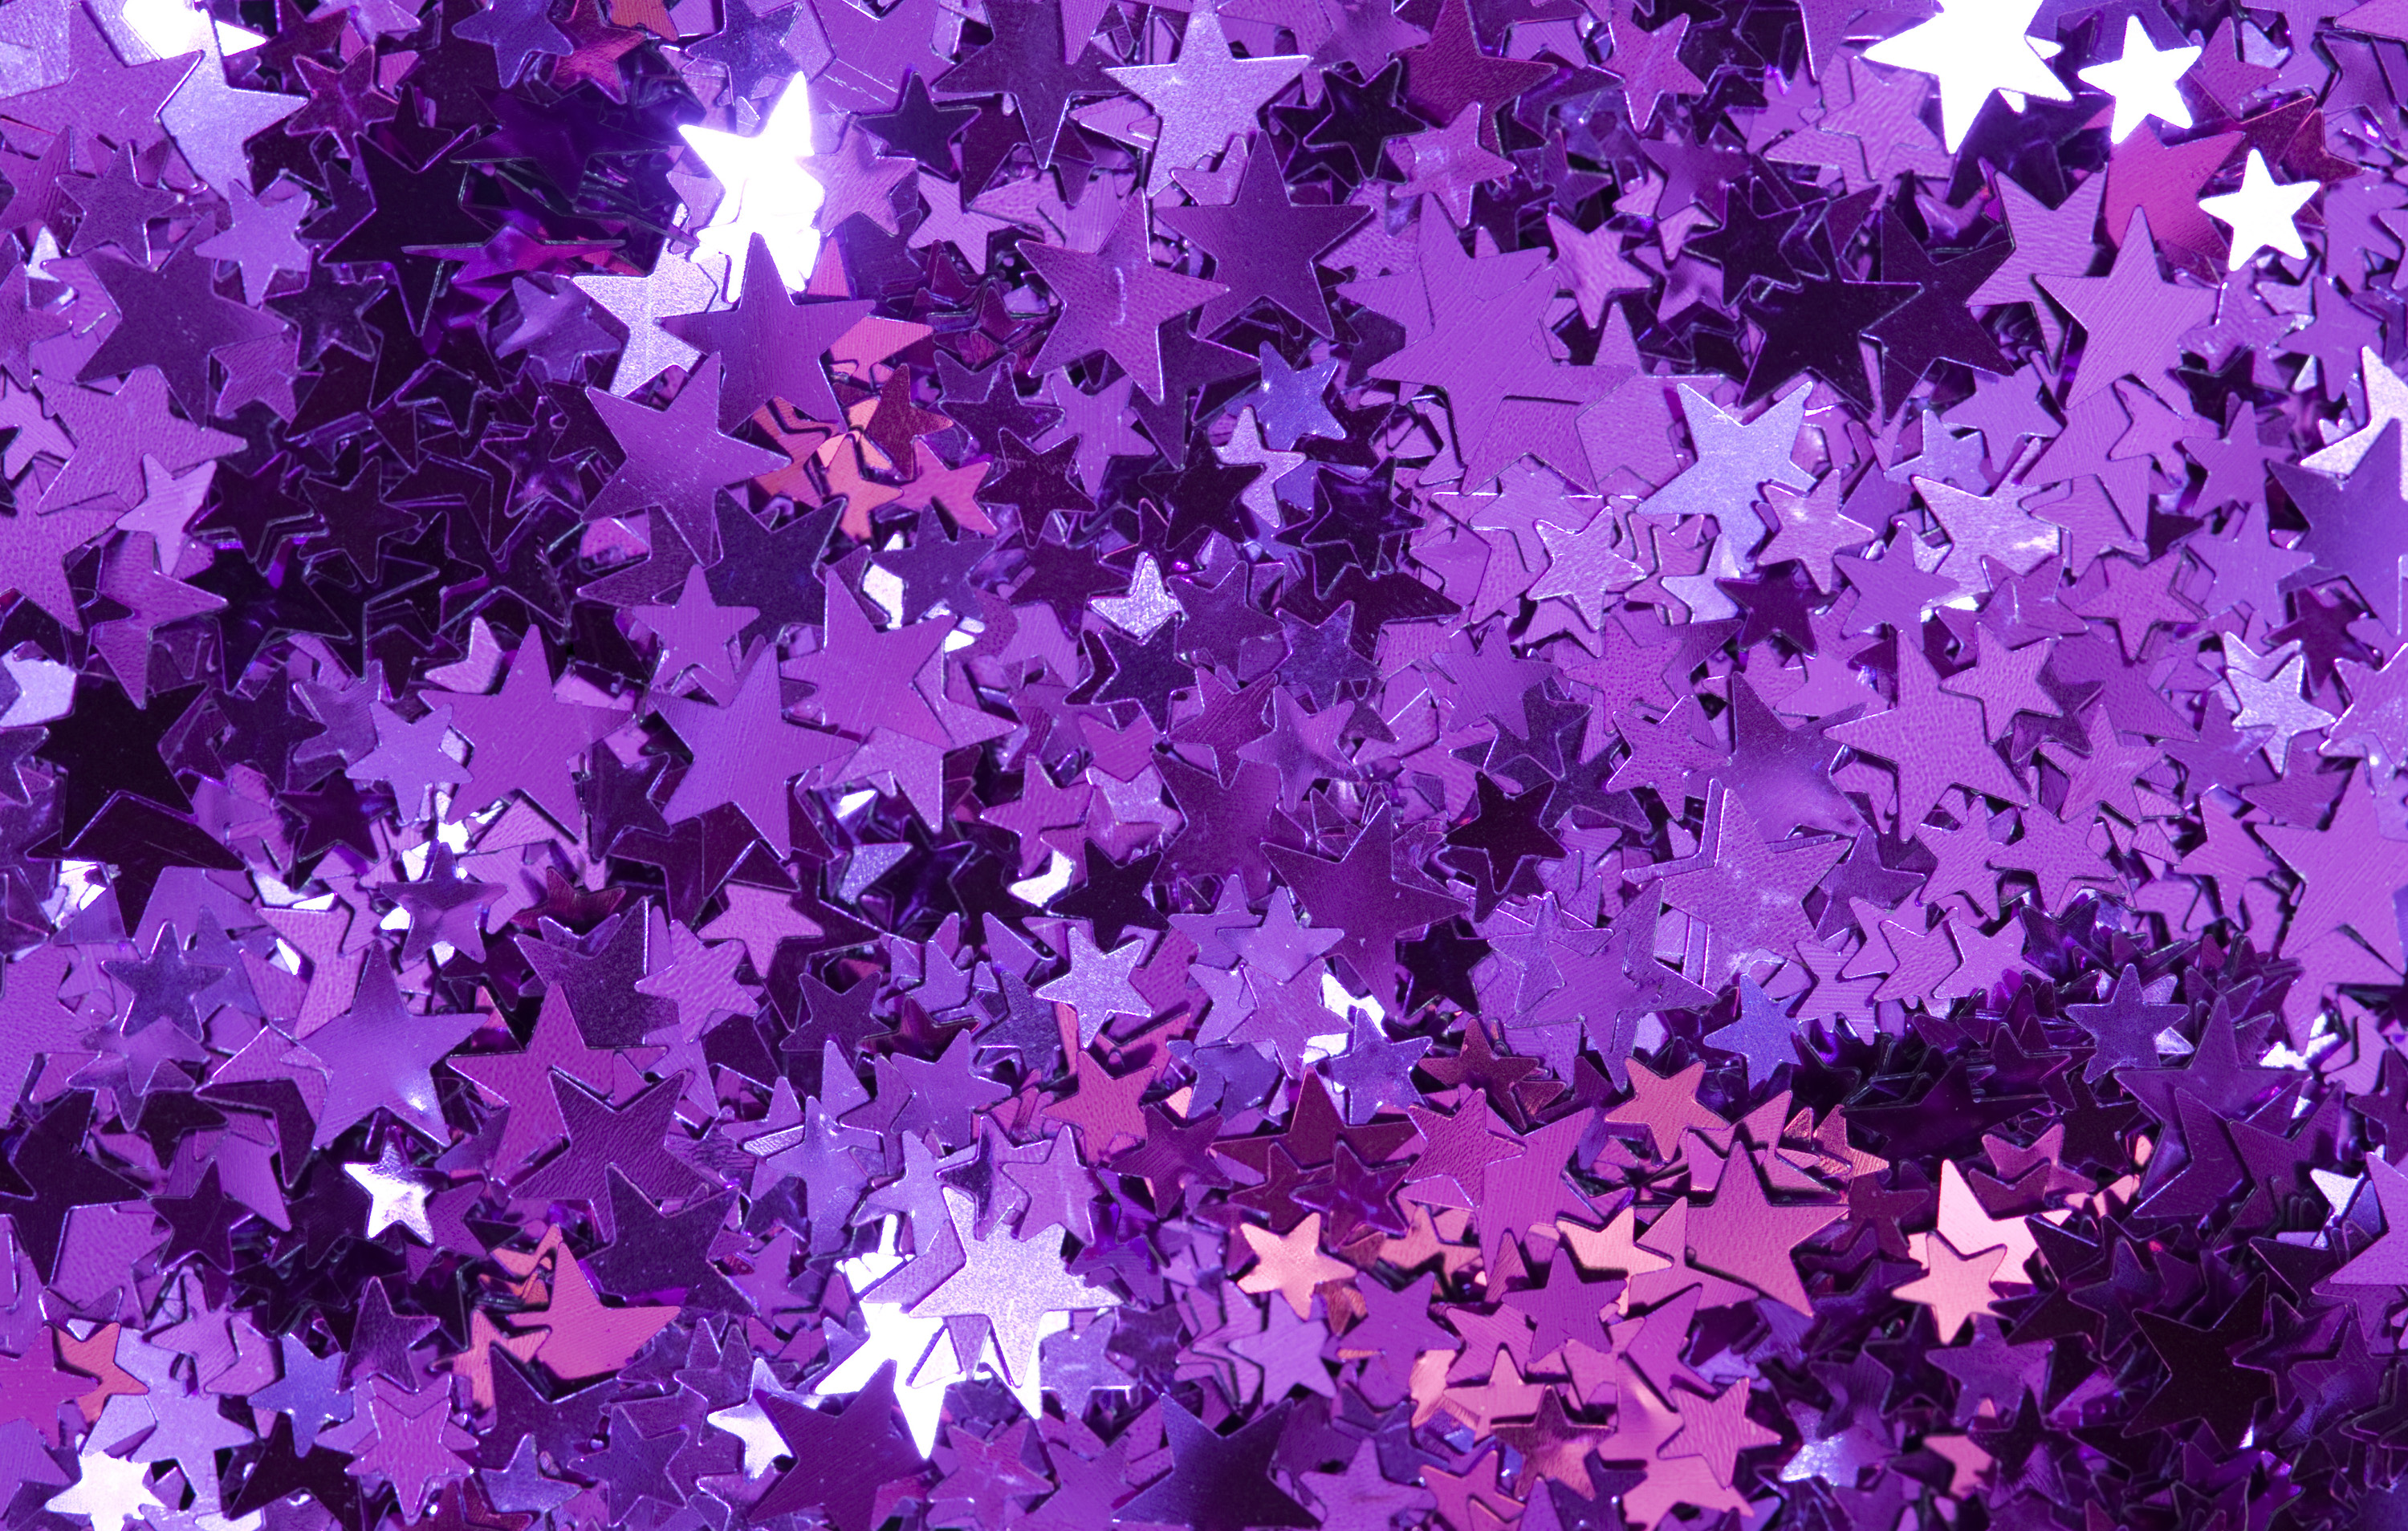 A Bright Colorful Background Of Sparkling Reflective Stars